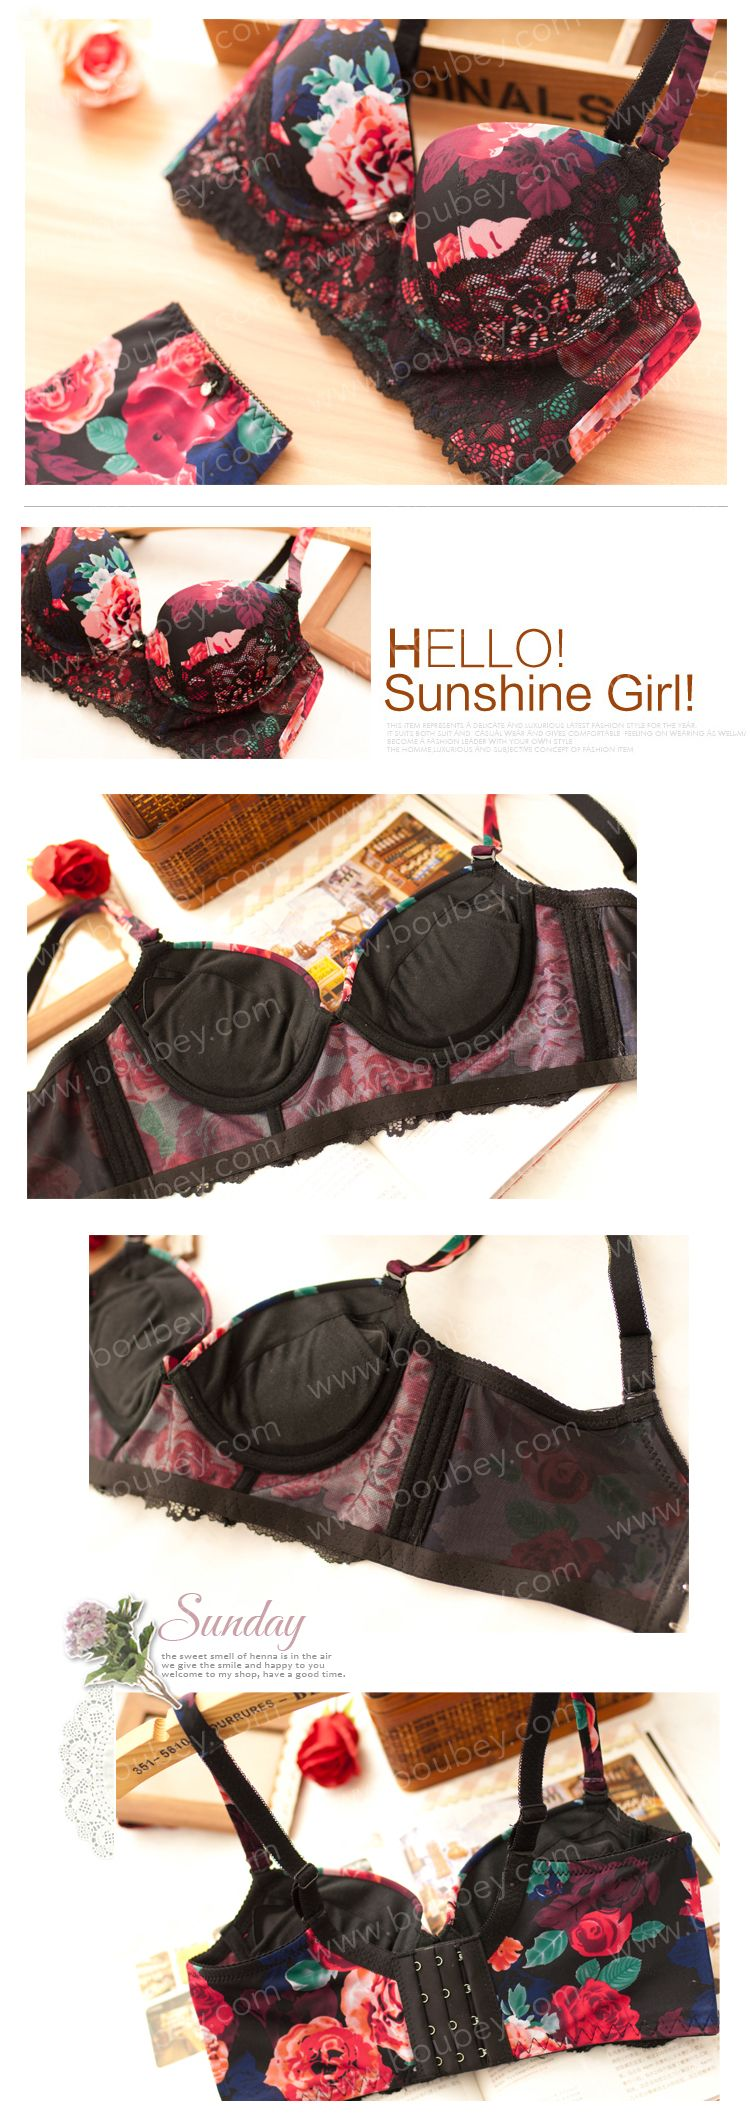 This exotic, floral-themed undergarment has exactly the right combination of sweet, girly cuteness and maybe-I'm-not-so-innocent-after-all raciness. We love how the bra provides just the right amount of cleavage bost, with the under bust accentuated by a lashing of fiercely coloured lace.   #floral #sexy #fancy #ladies #lingerie